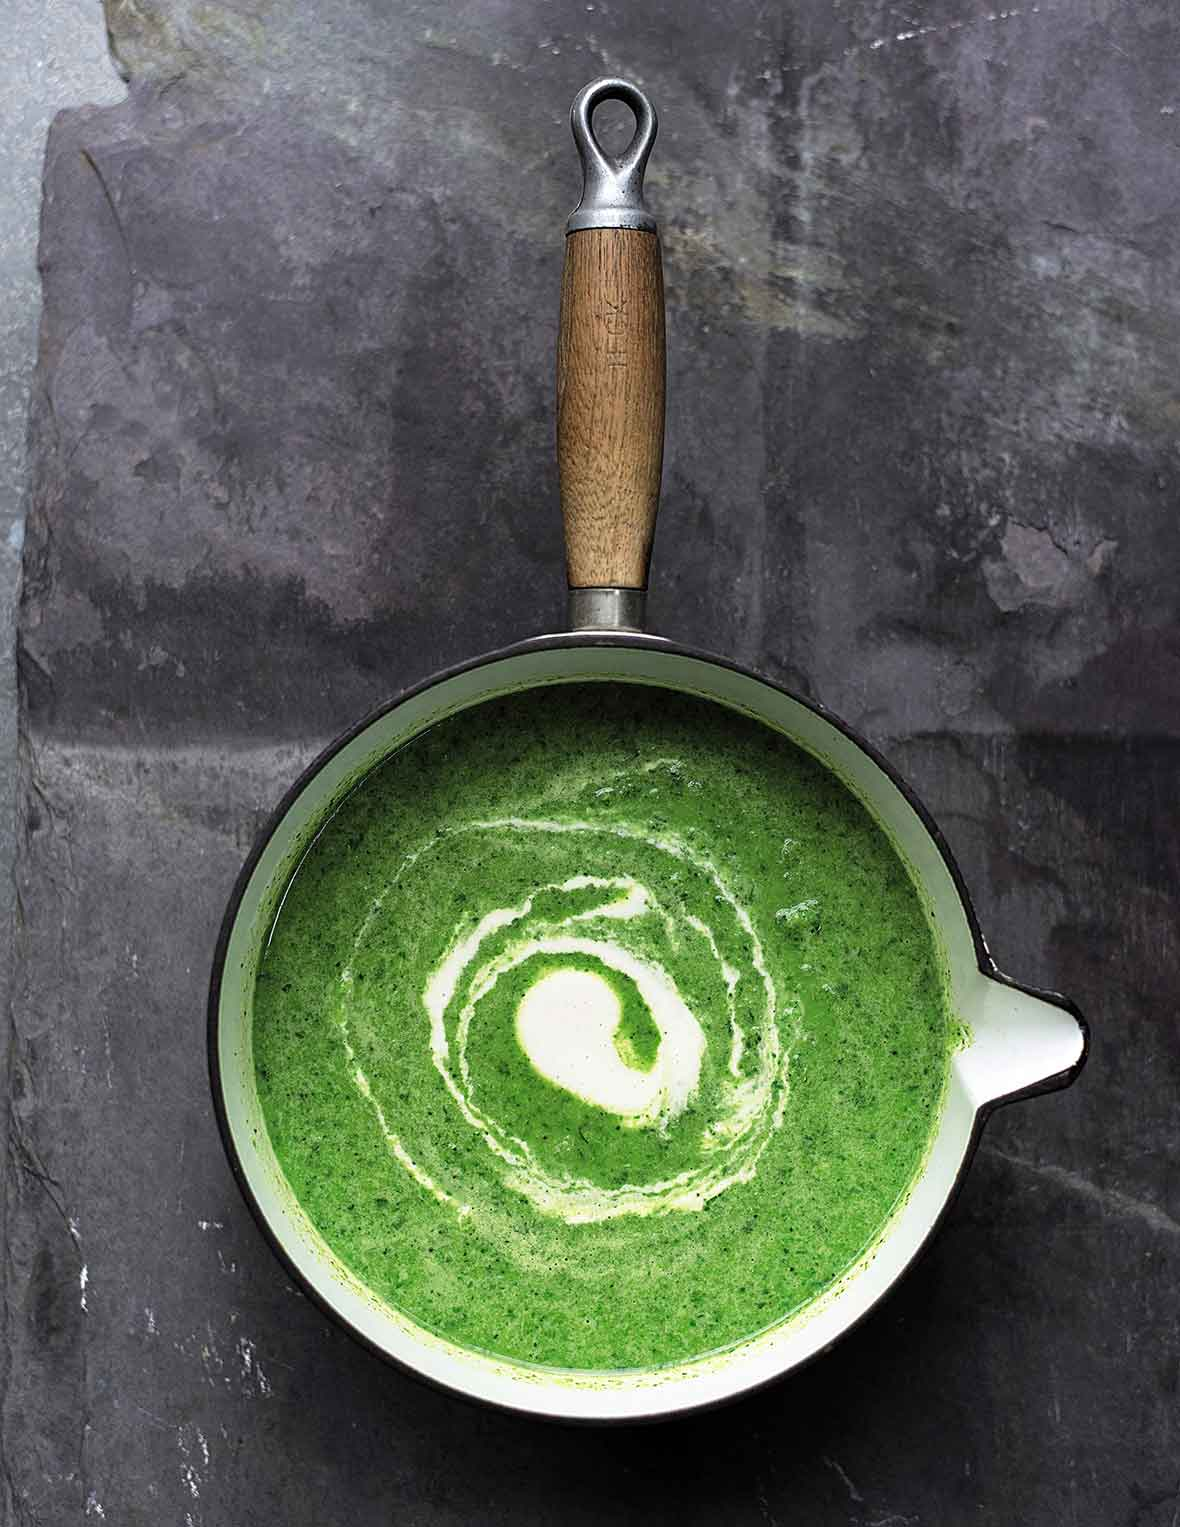 A saucepan filled with green soup, with a swirl of cashew cream in the center.